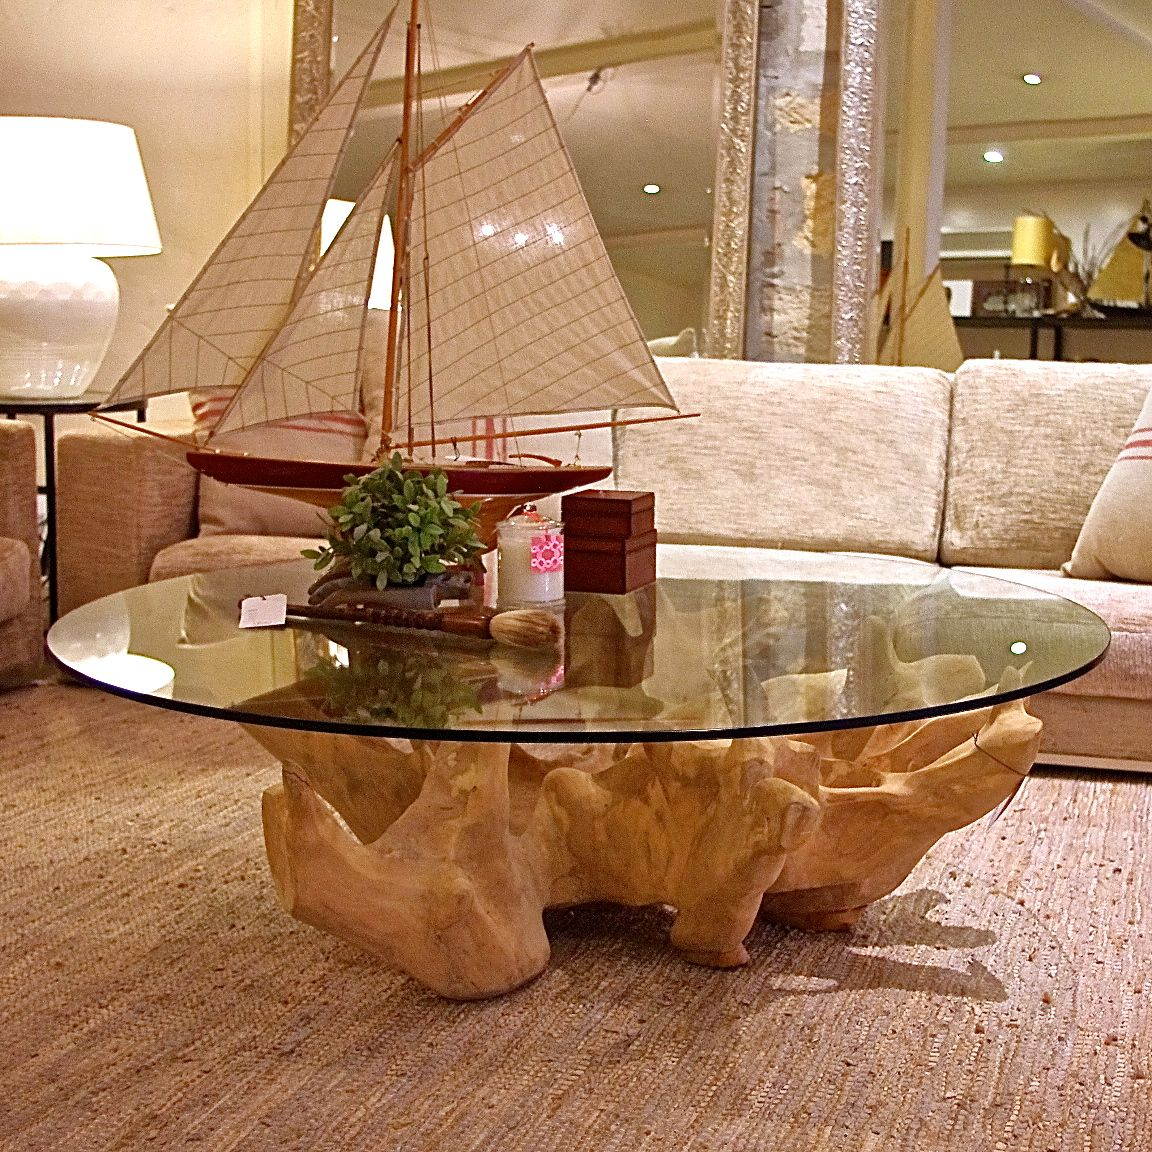 Tree trunk table this could be cool with my glass i have Tree trunk coffee table glass top